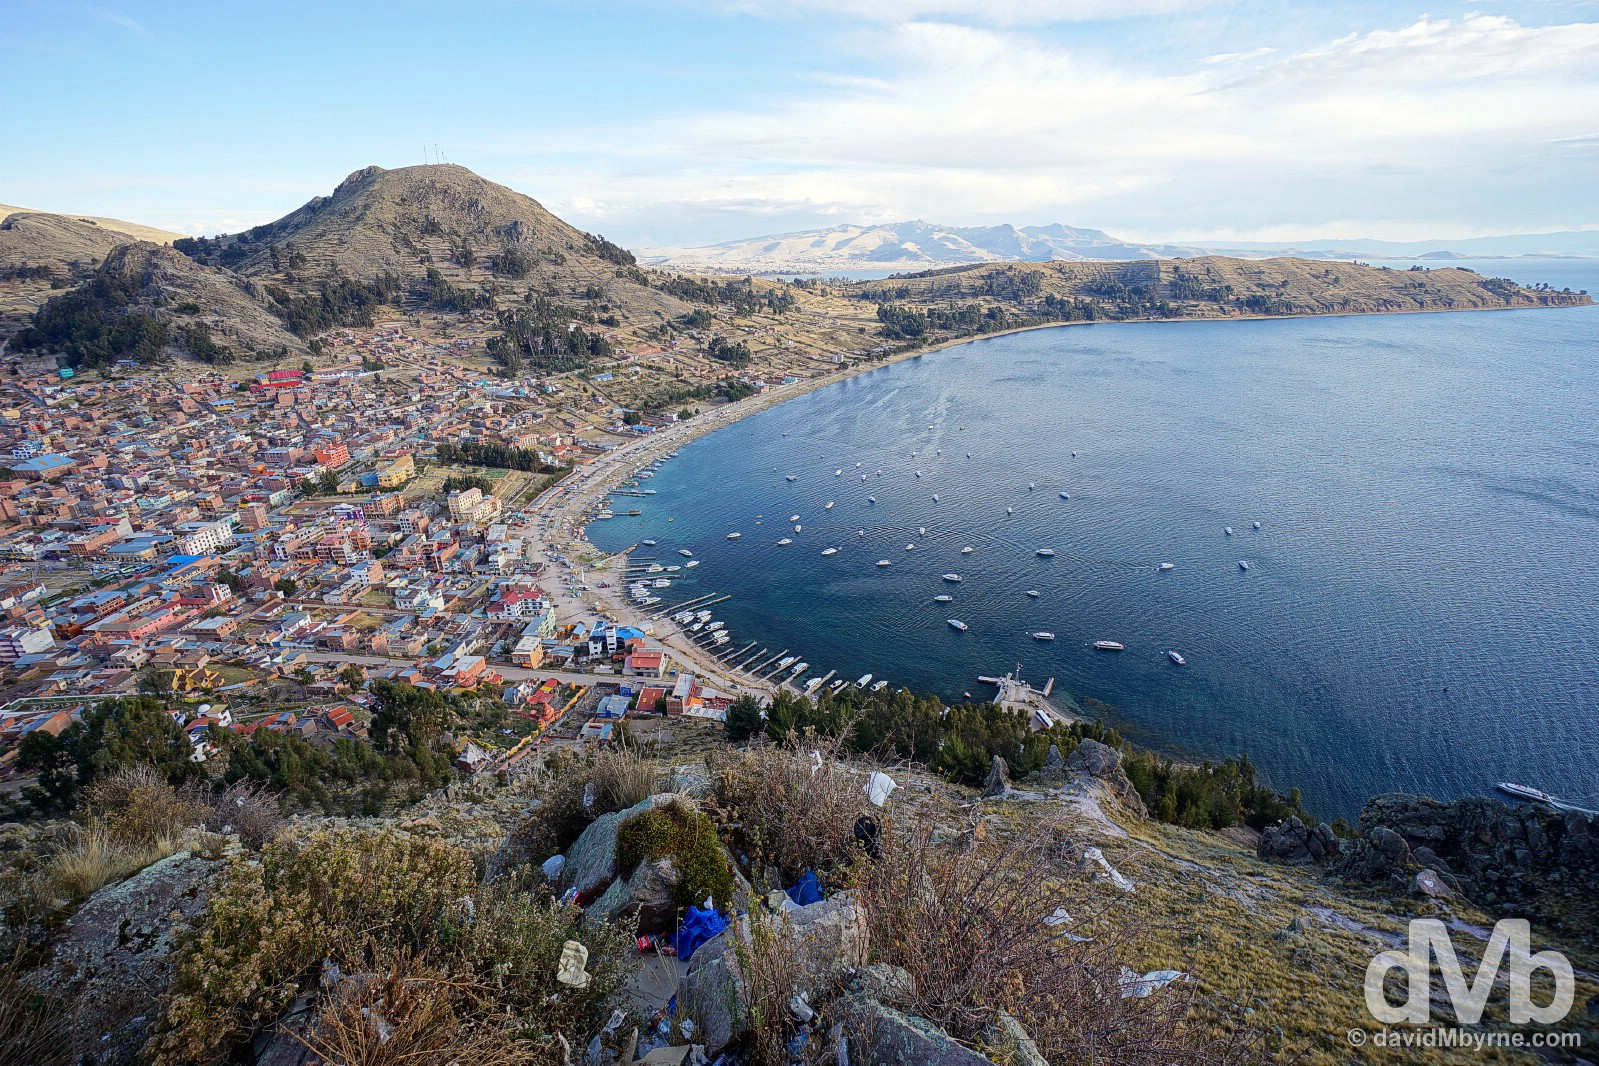 The town of Copacabana on the shores of Lake Titicaca as seen from the pilgrimage mountain Cerro Calvario. Copacabana, Bolivia. August 23, 2015.